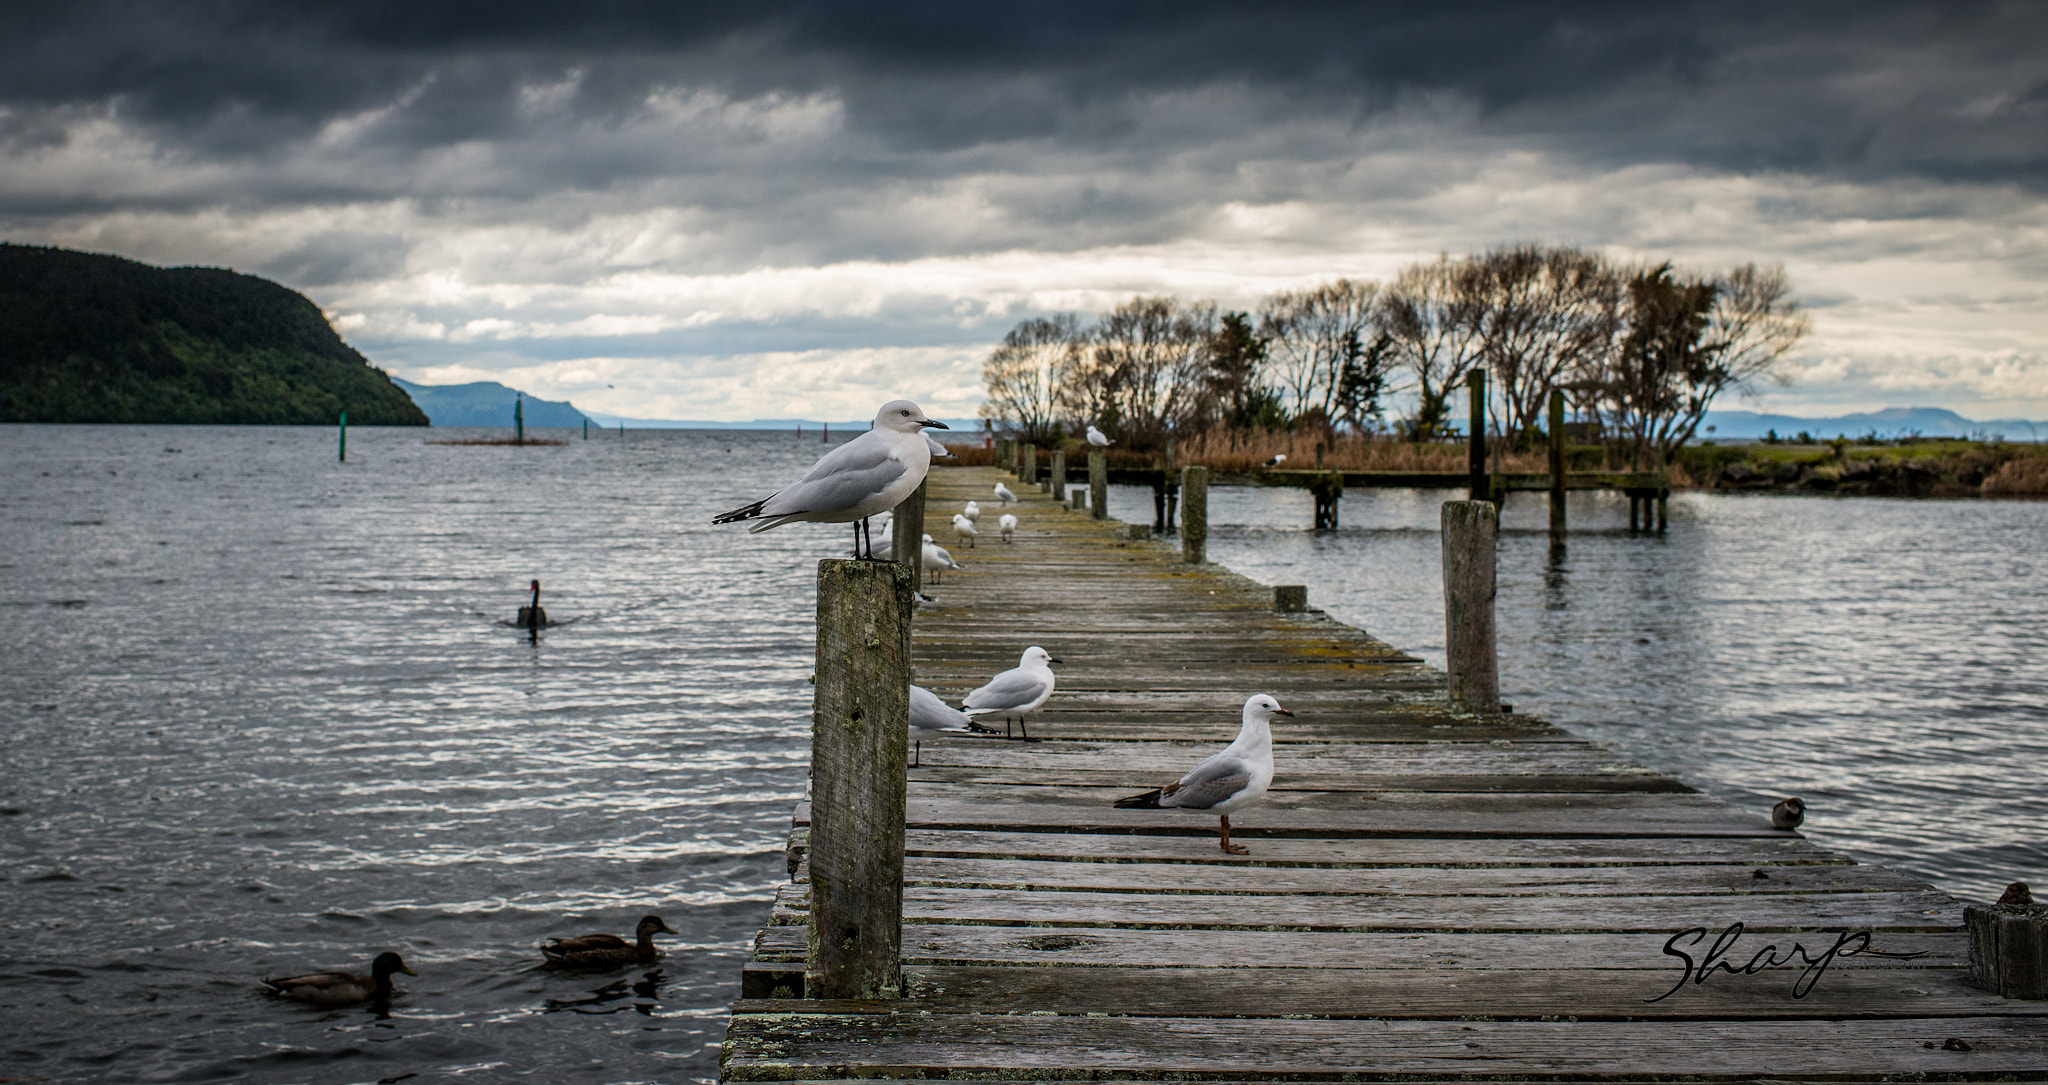 Photograph Lake Taupo by darren sharp on 500px